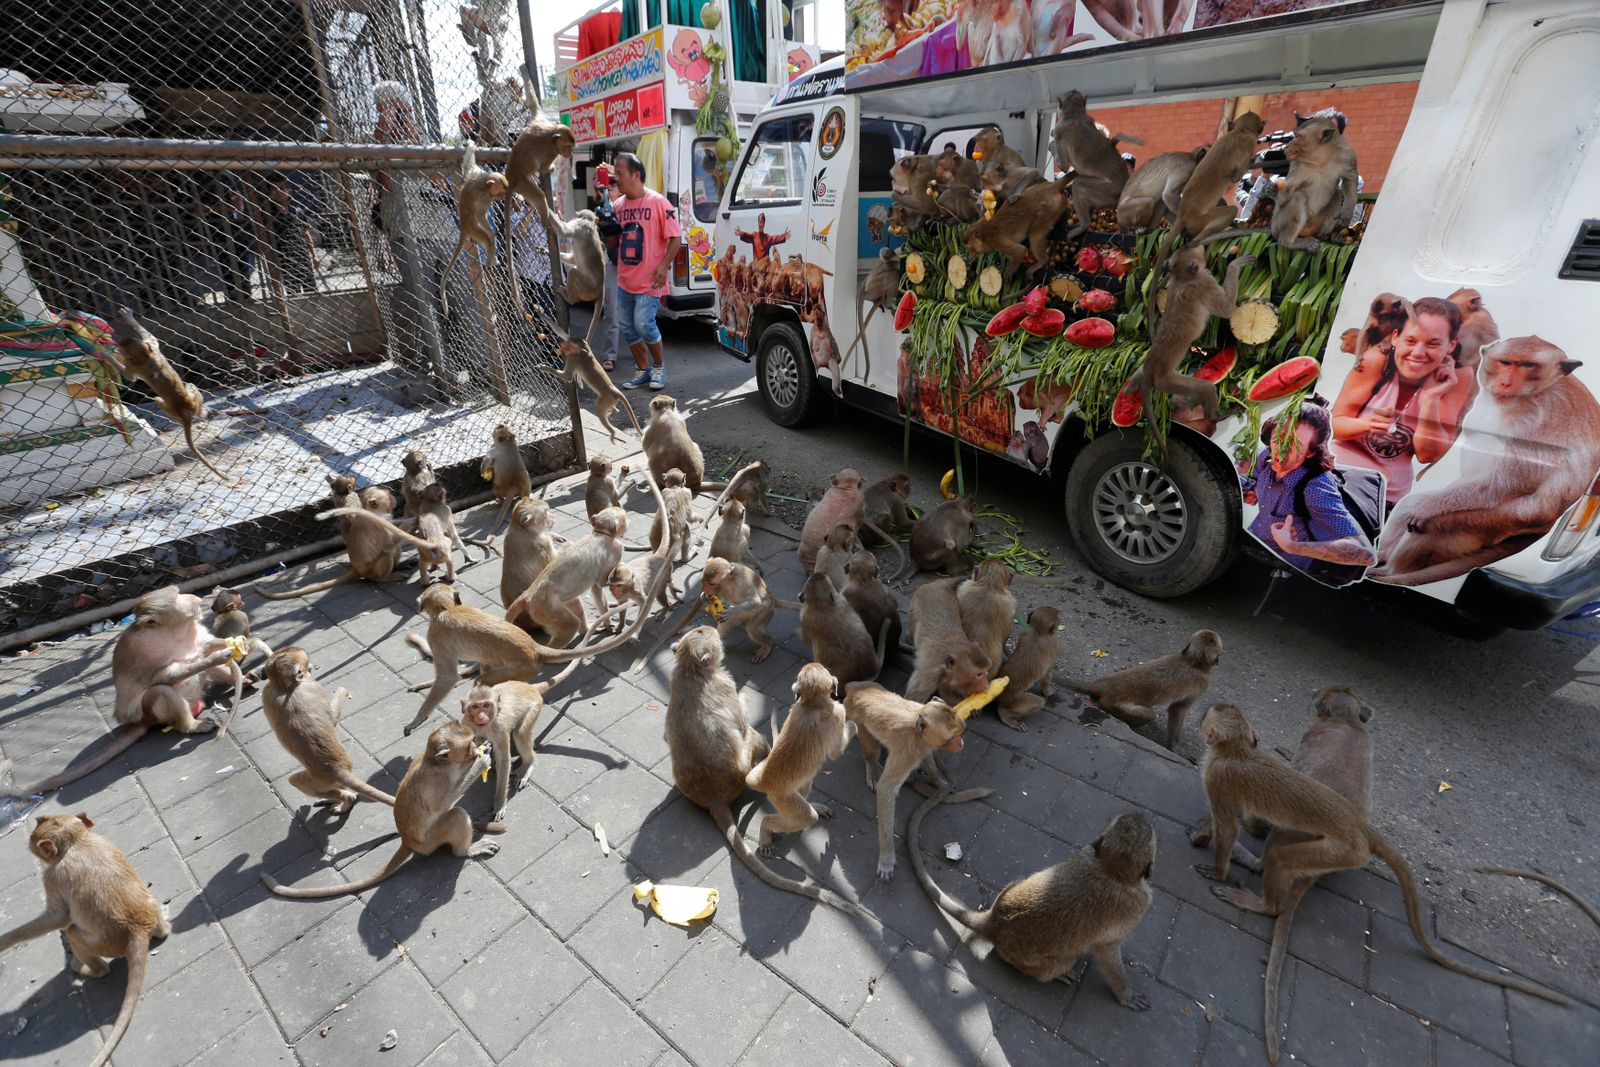 Monkeys eat fruits and vegetables during the Monkey Buffet Festival, near the Phra Prang Sam Yot temple in Lopburi province